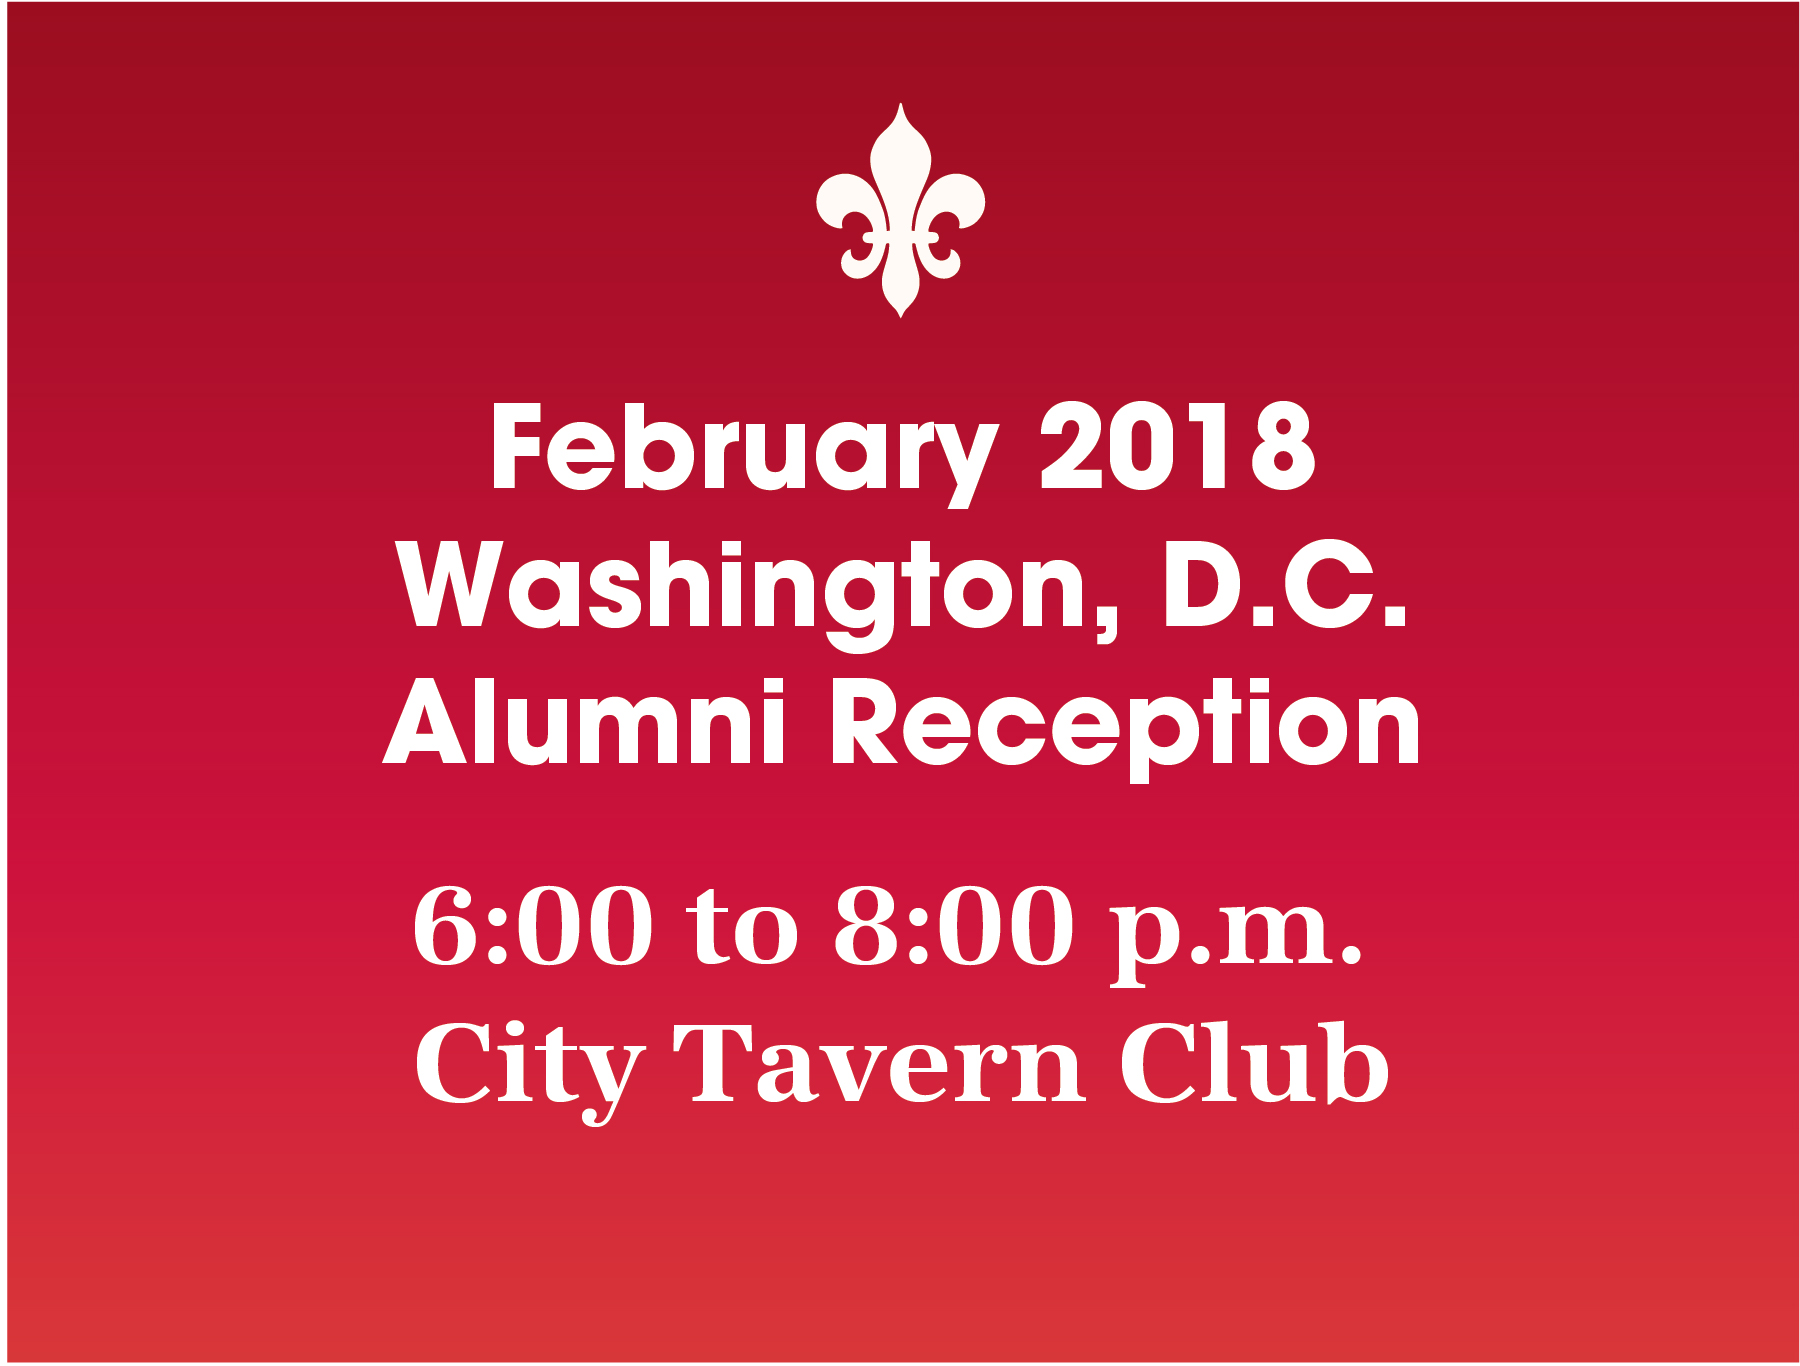 Washington D.C. Alumni Reception